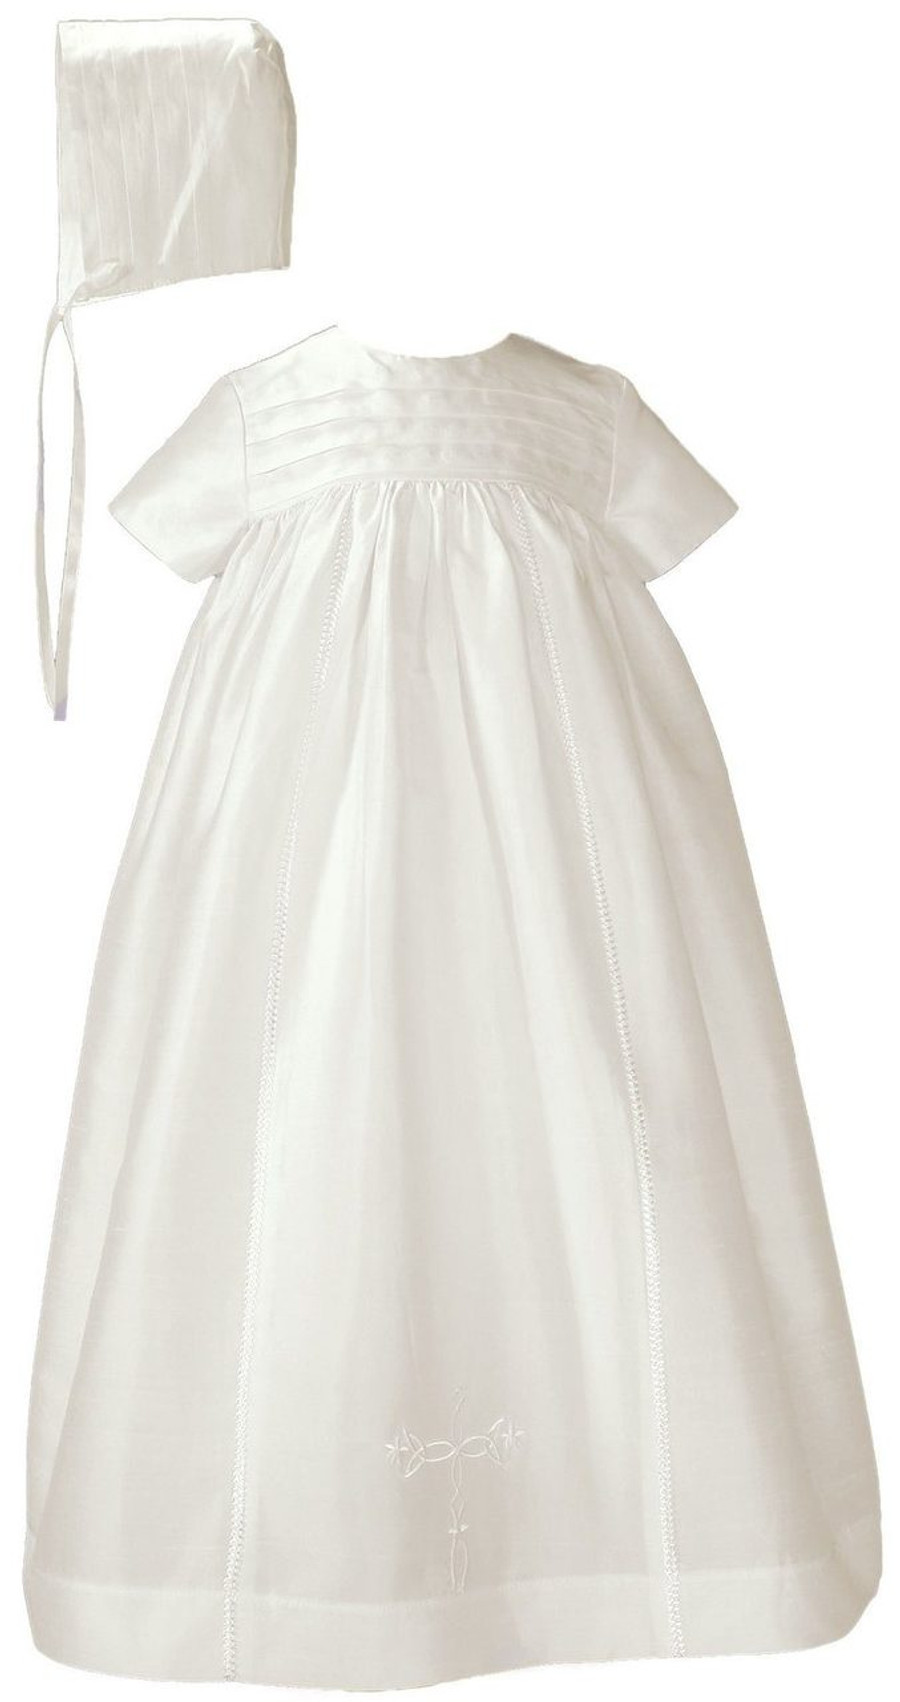 Beautiful 100% silk dupioni family special occasion christening gown.